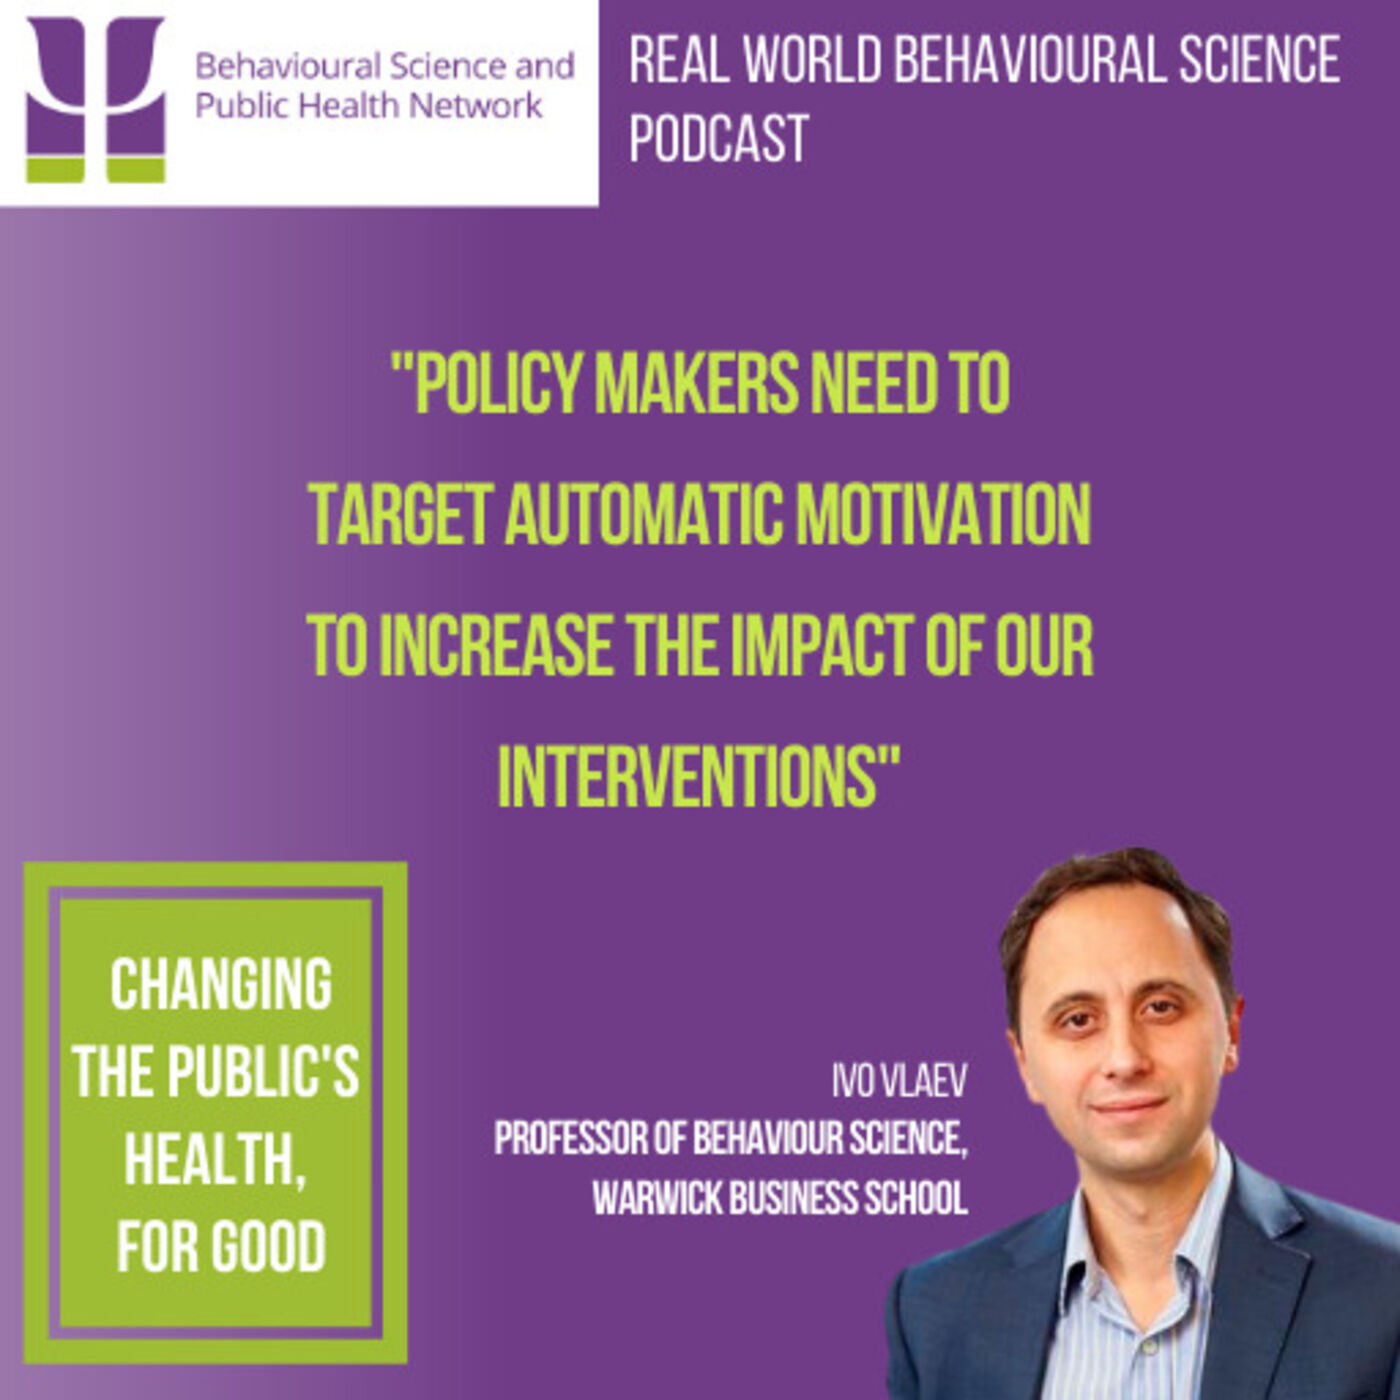 Professor Ivo Vlaev (Warwick Business School)